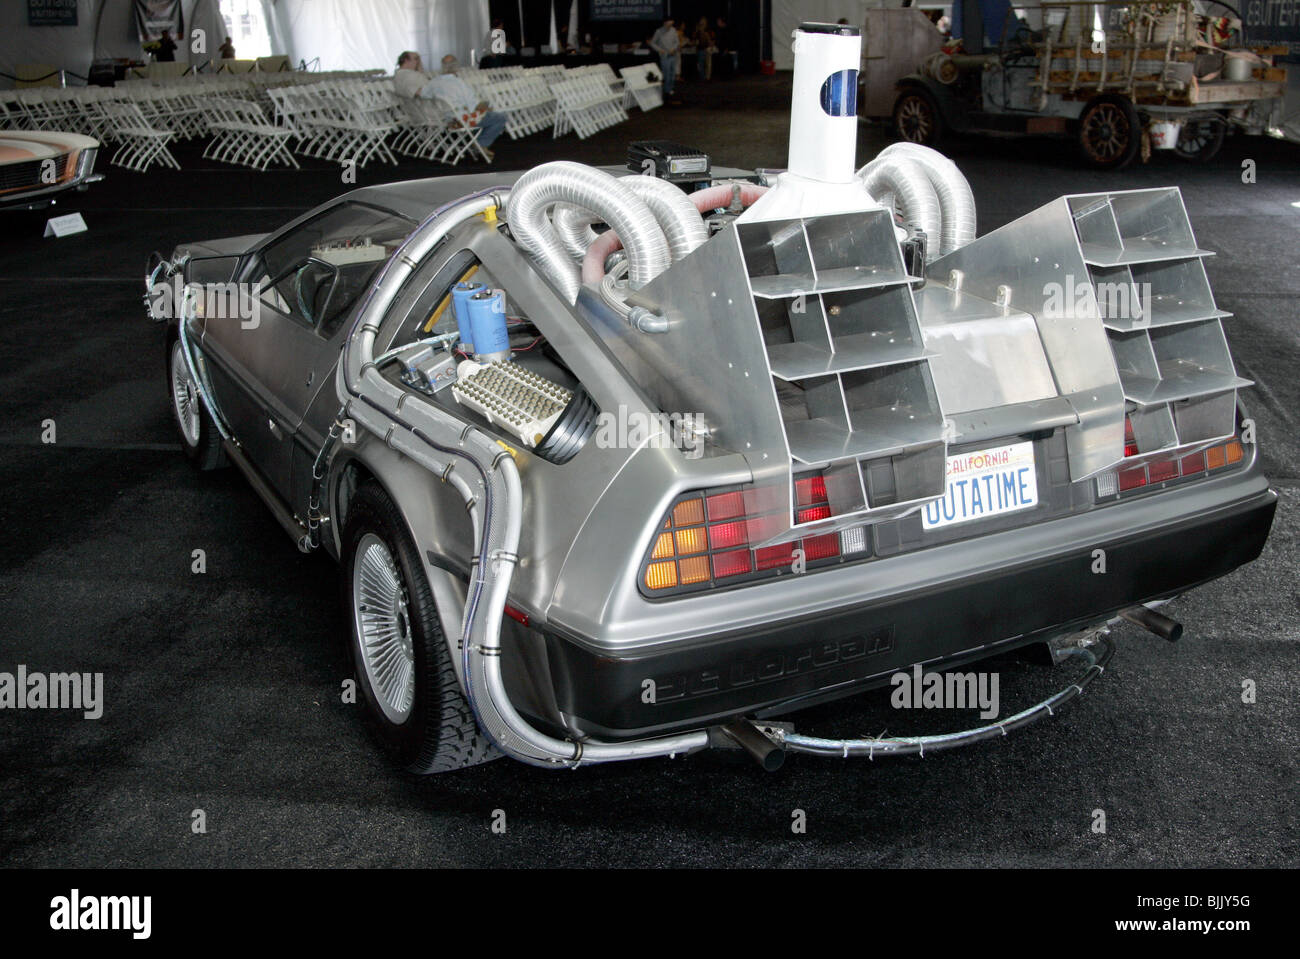 BACK TO THE FUTURE 3 1981 DELOREAN GEORGE BARRIS ...